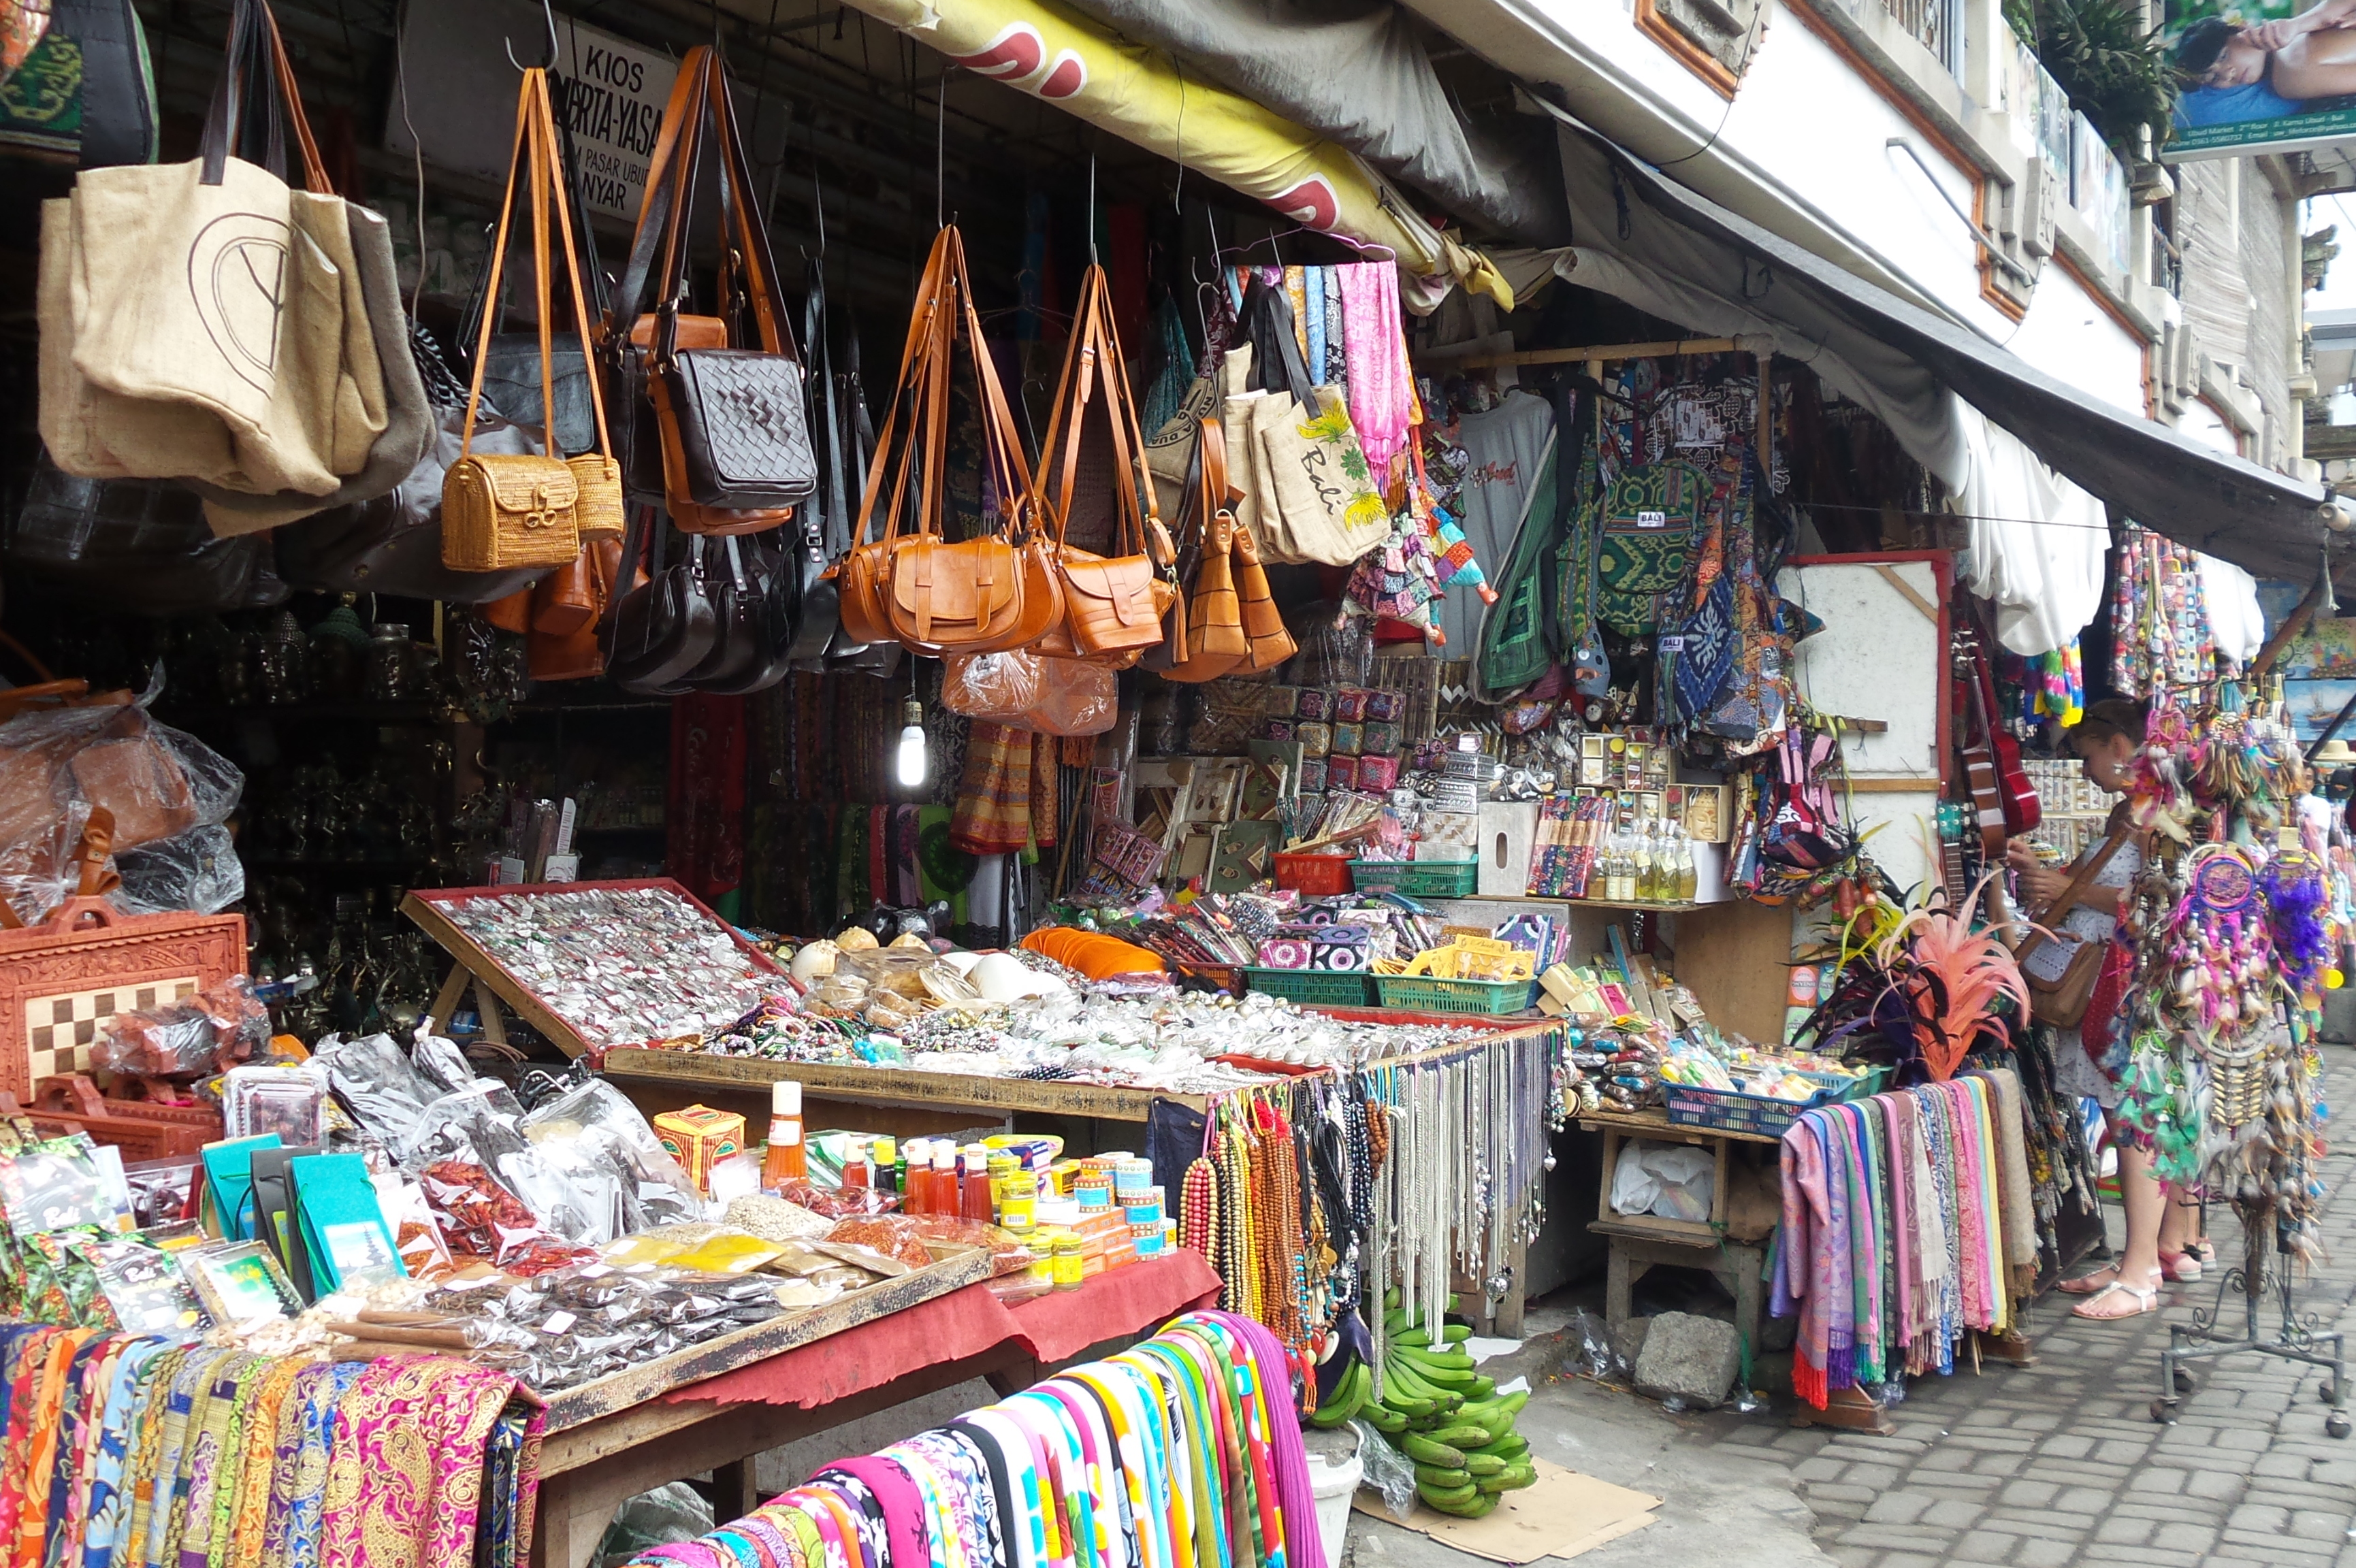 #WheretoBuy: Souvenirs and Handicrafts in Bali